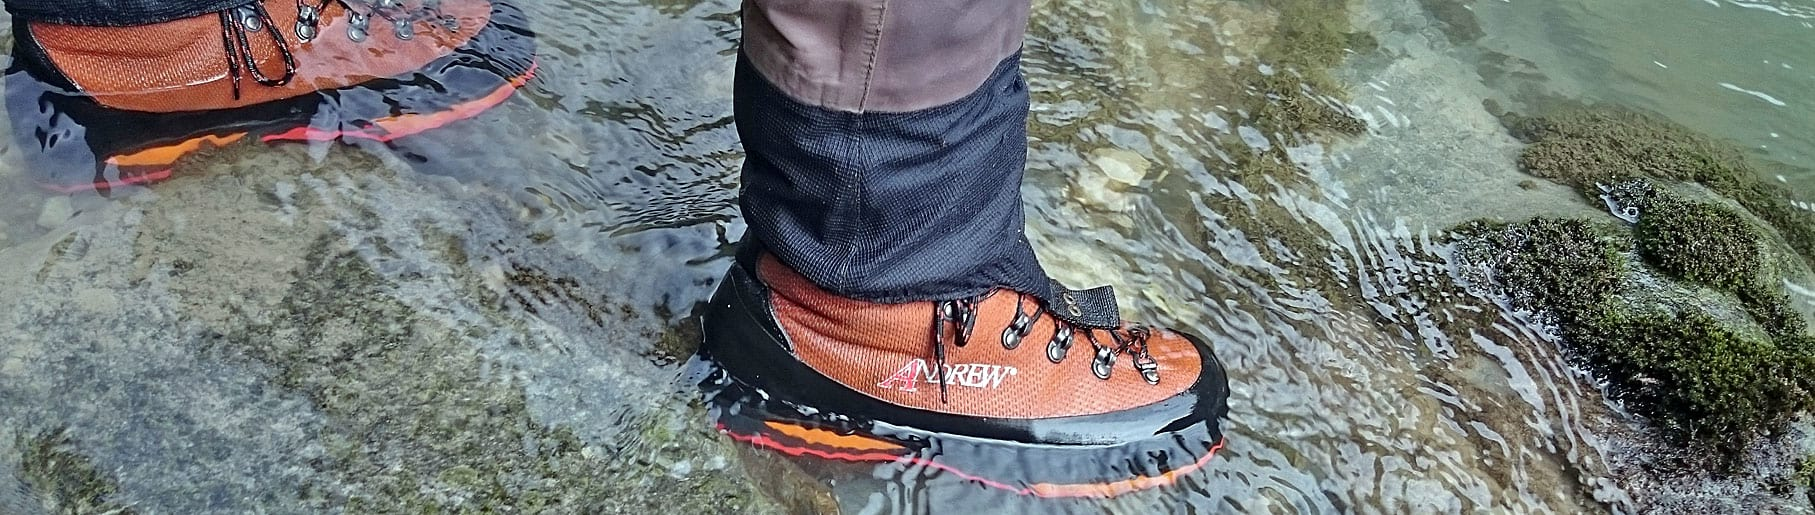 [w]CHAUSSURES DE WADING[/w]